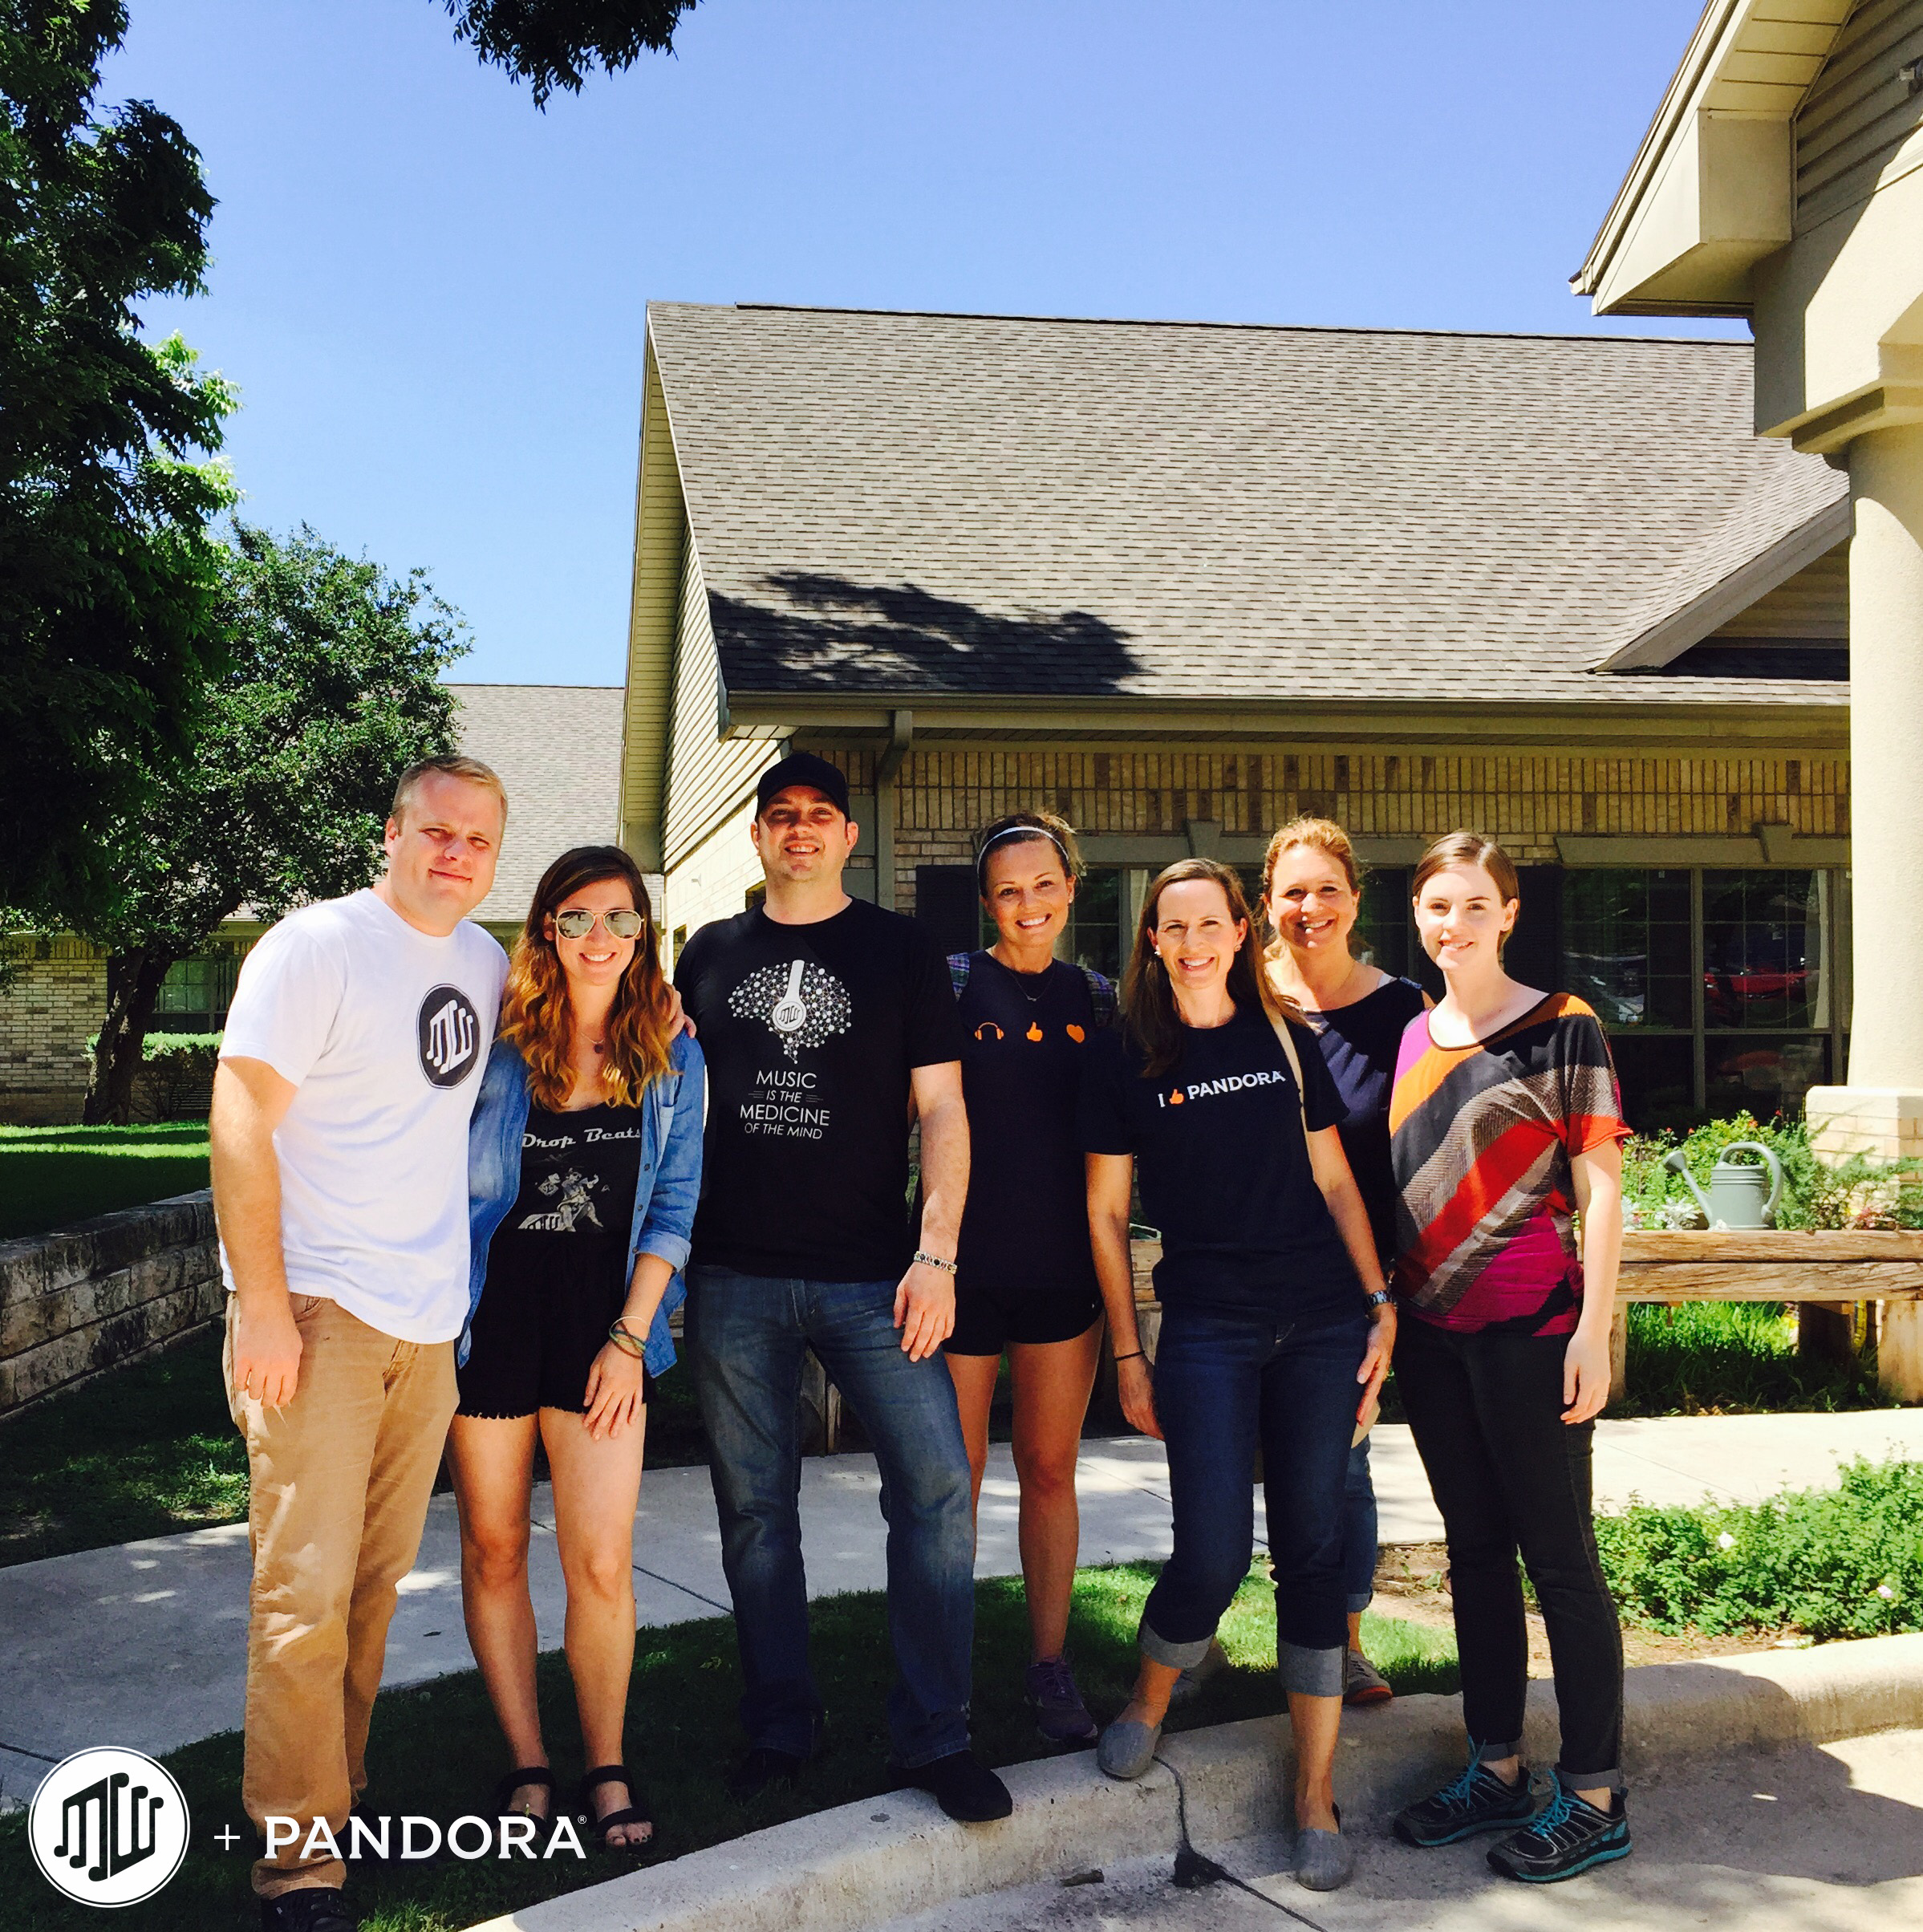 pandora employees jazz up the lives of austin memory care pandora7